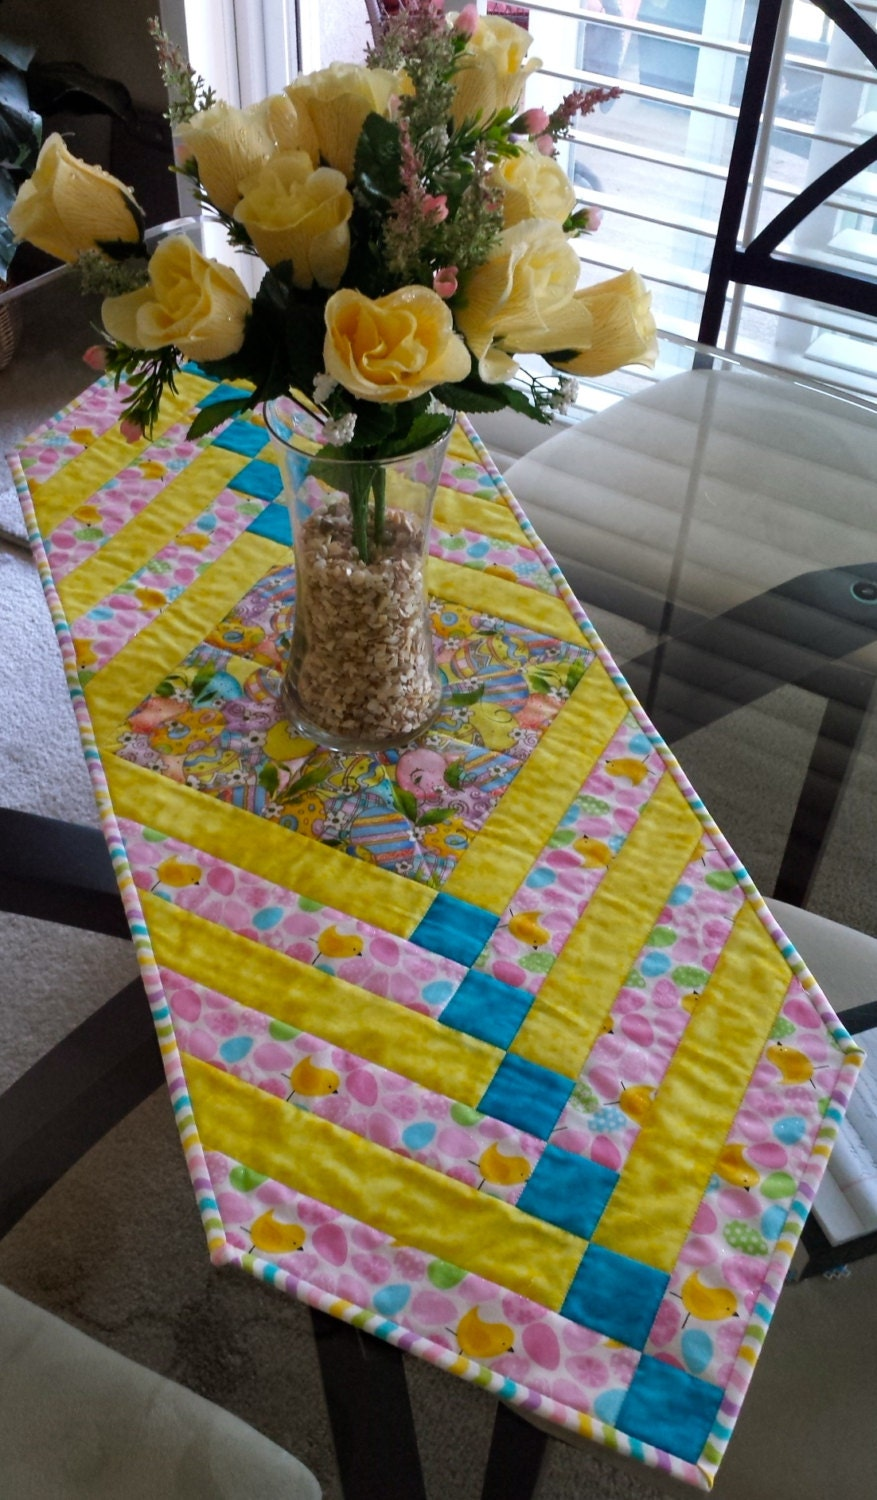 quilted easter table runner 38 1 2 x 13 1 4 inches. Black Bedroom Furniture Sets. Home Design Ideas